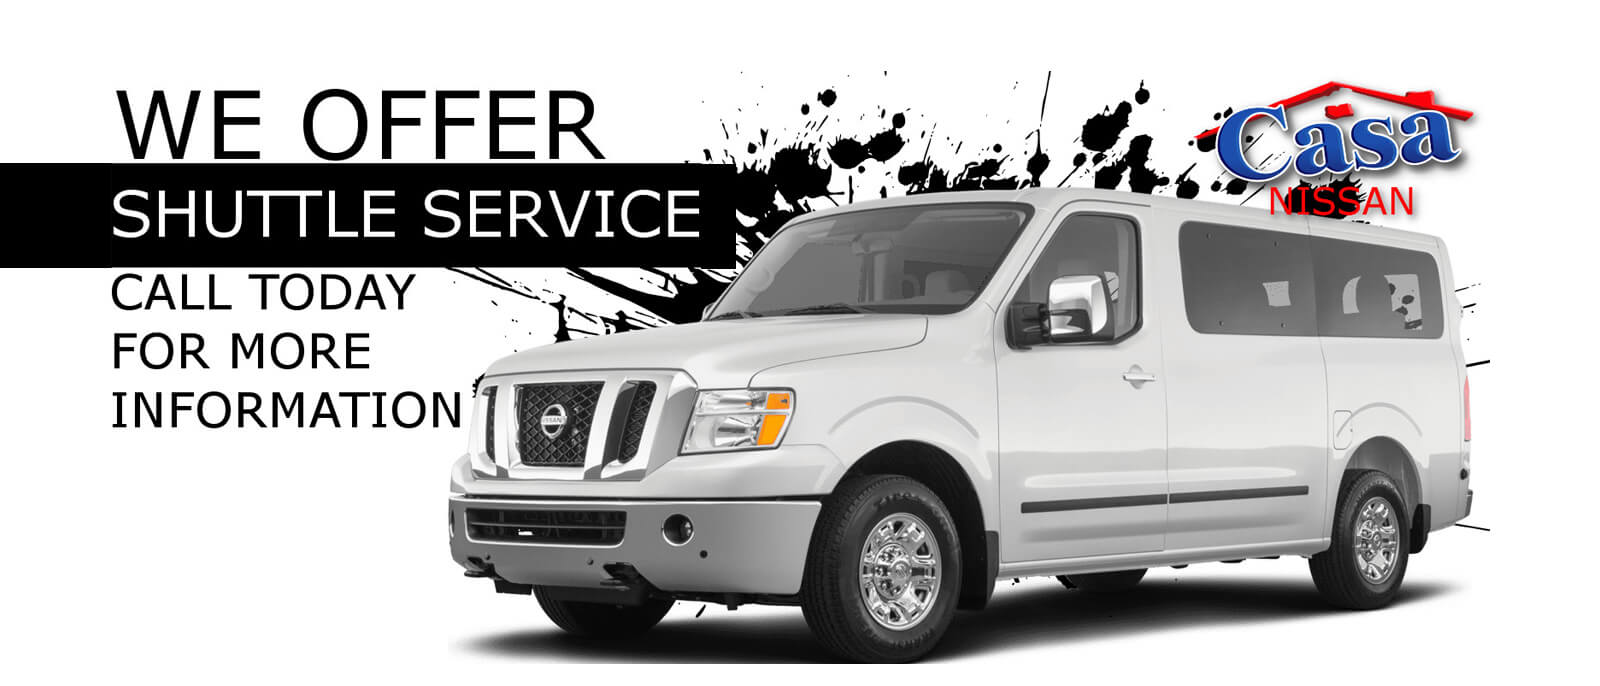 We Offer Shuttle Service! Call today for more information